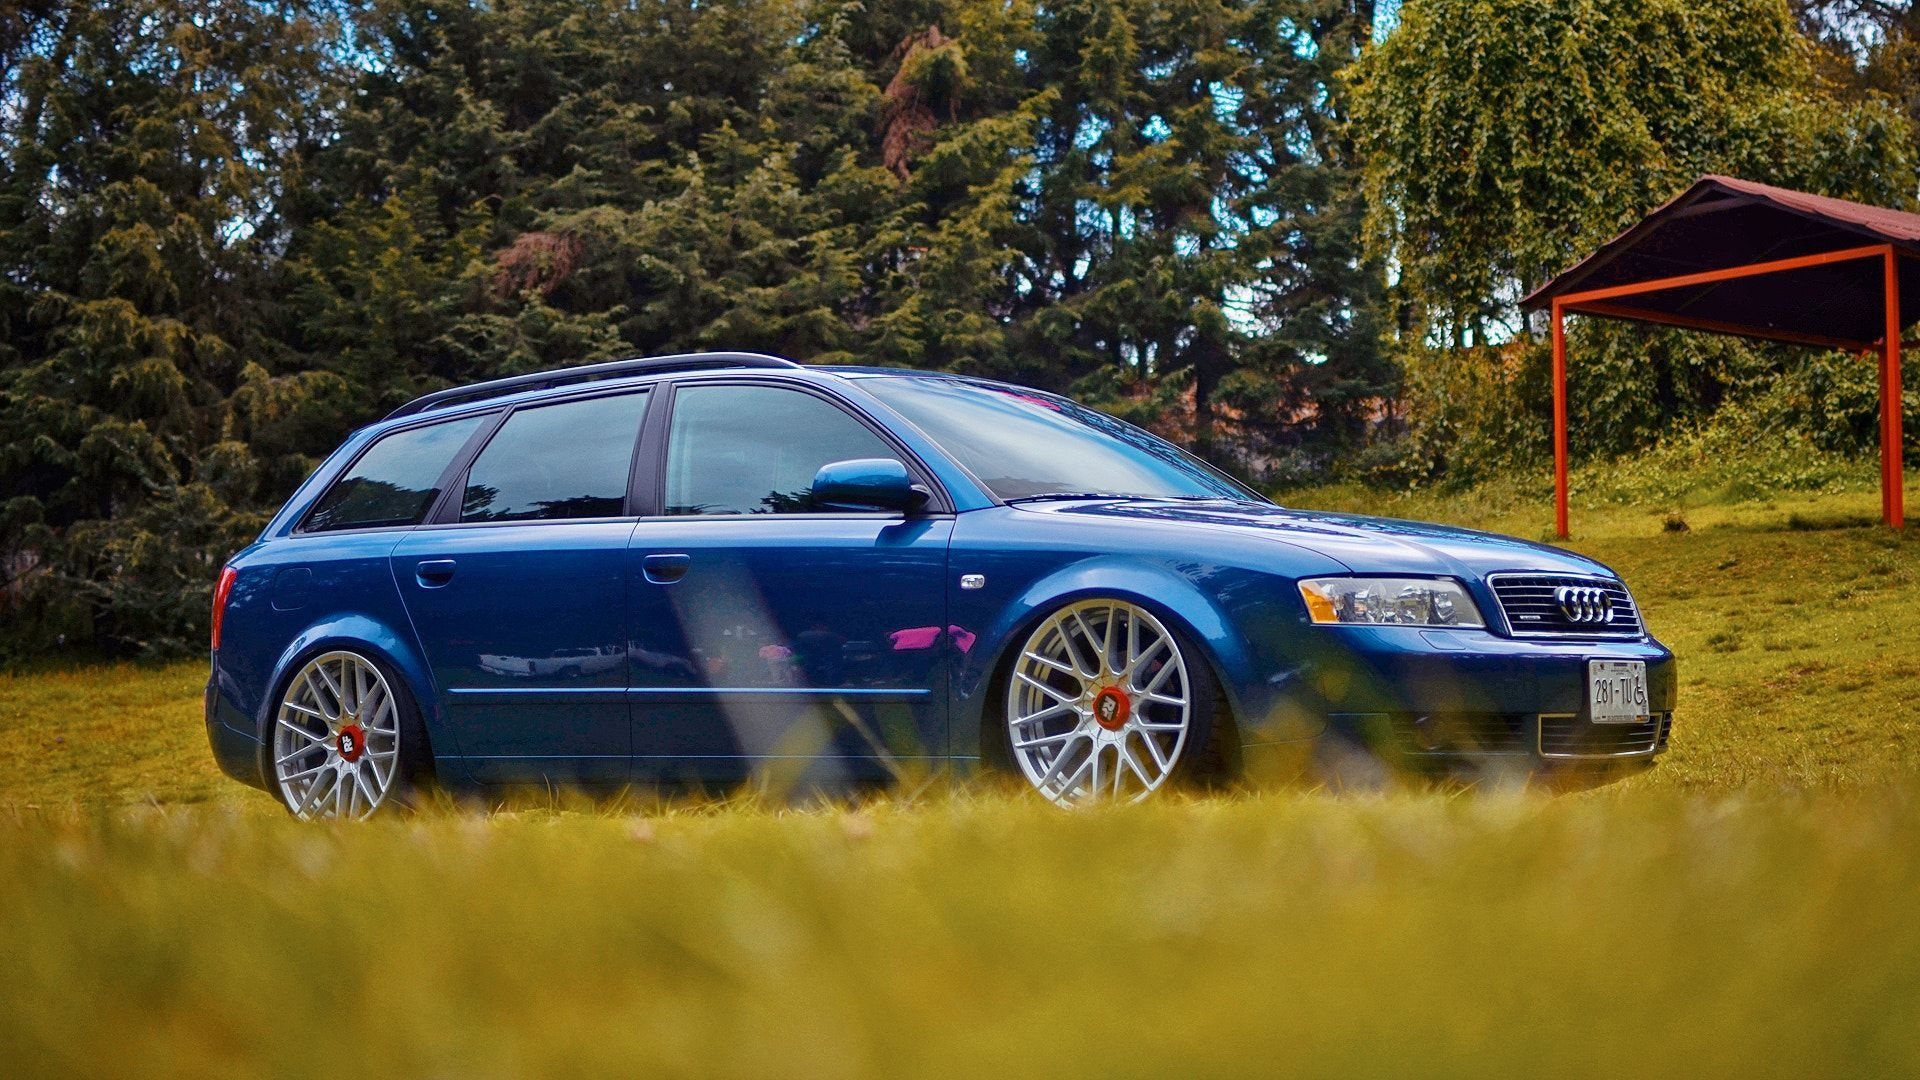 Audi A4 2003 Modified Awesome Audi Avant Amazing Audi Avant Bagged Sittin In Rse Rotiforms-1458 Of Lovely Audi A4 2003 Modified